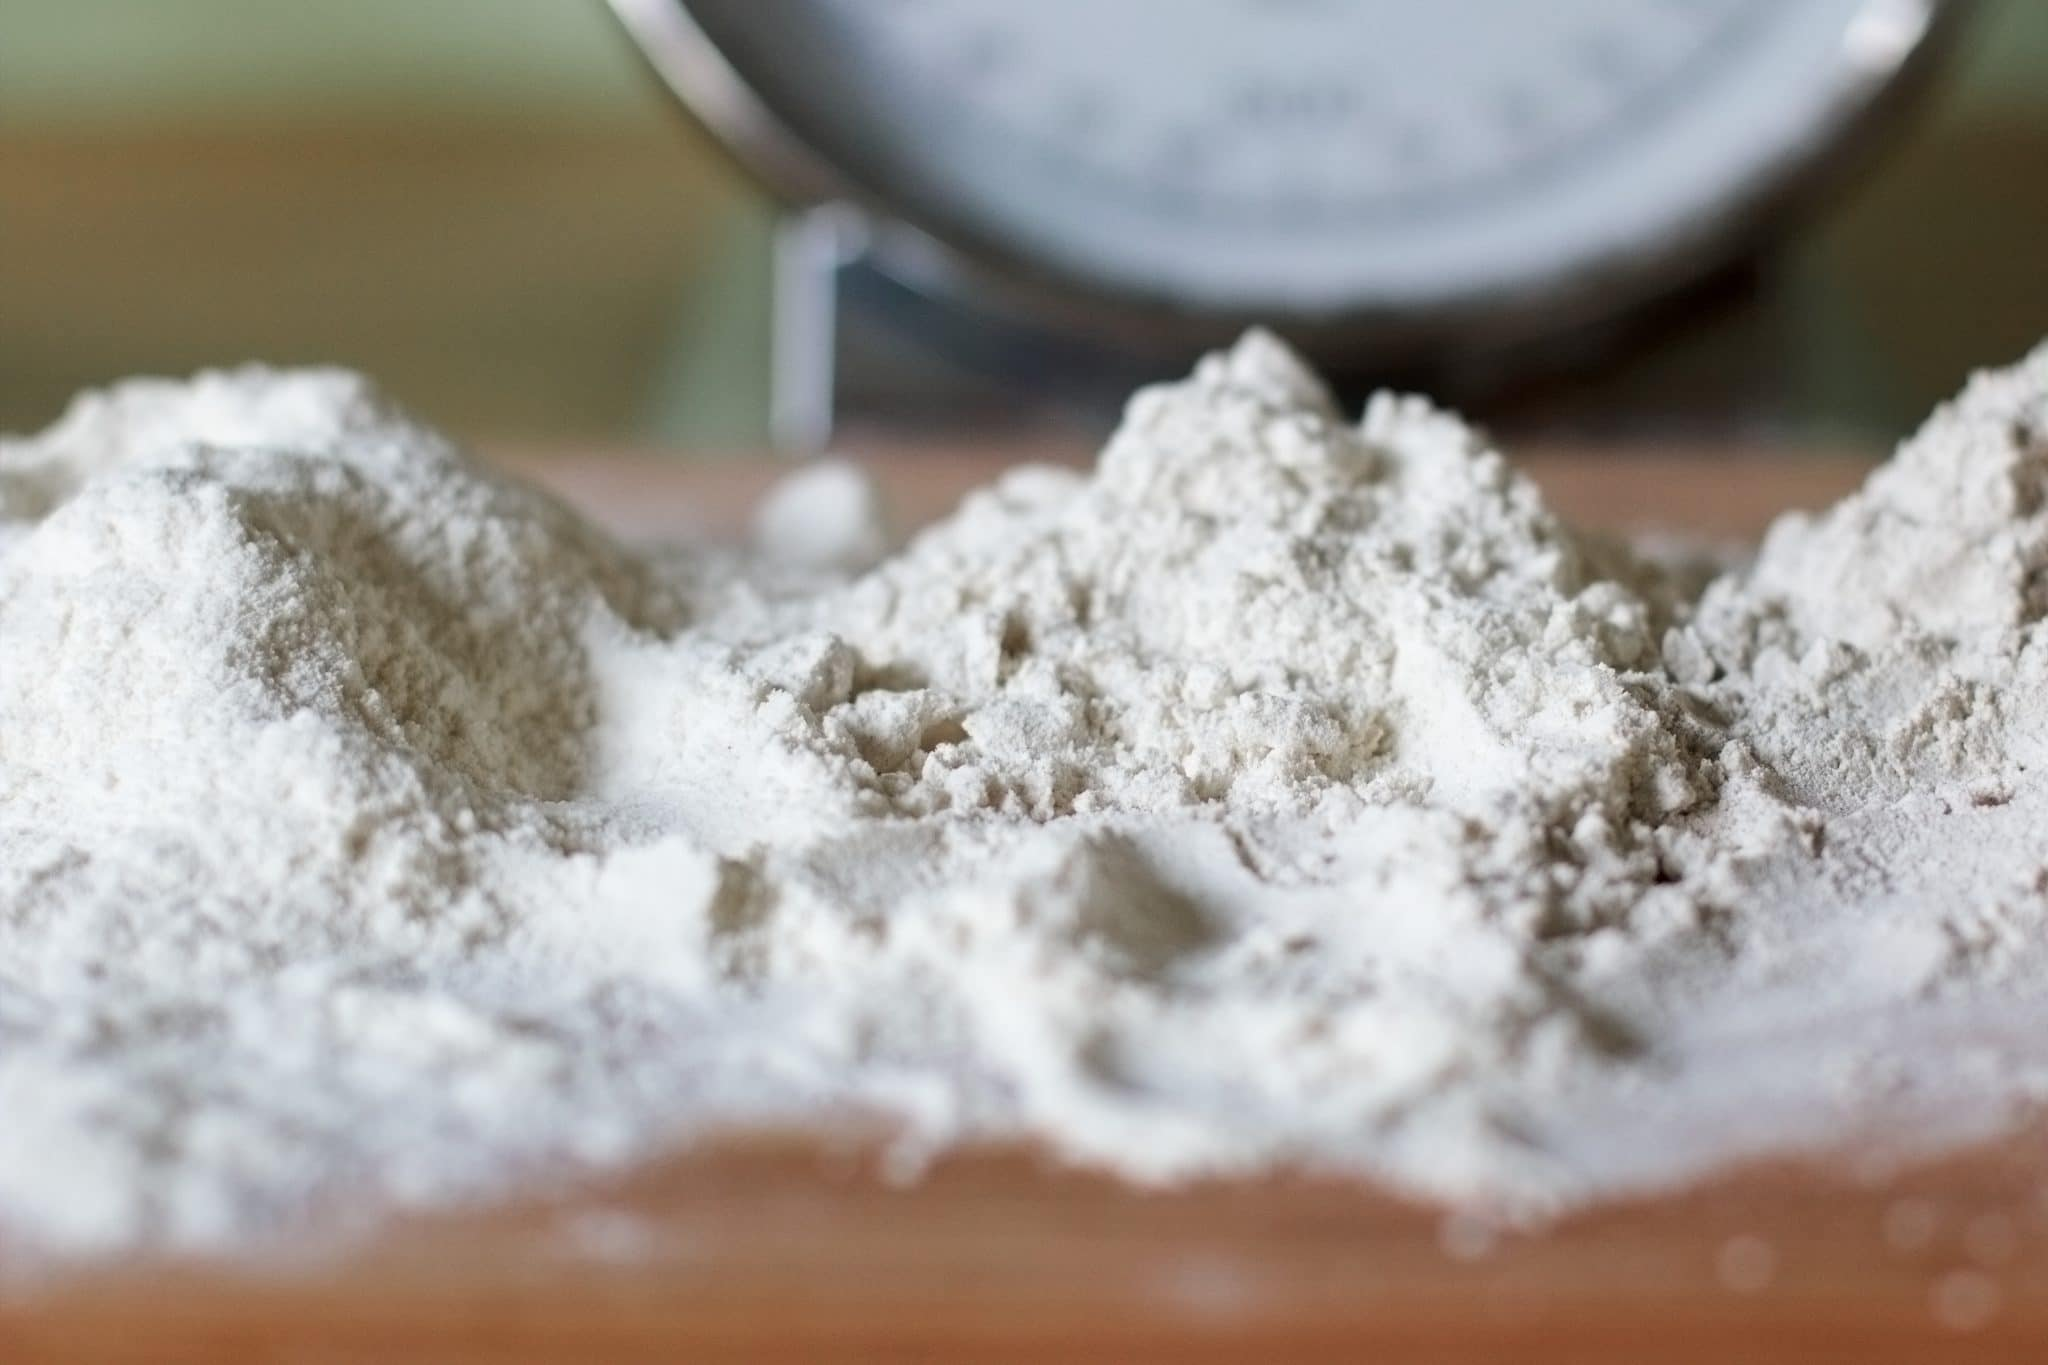 Cornstarch Vs Flour: Which Thickens Better? - On The Gas